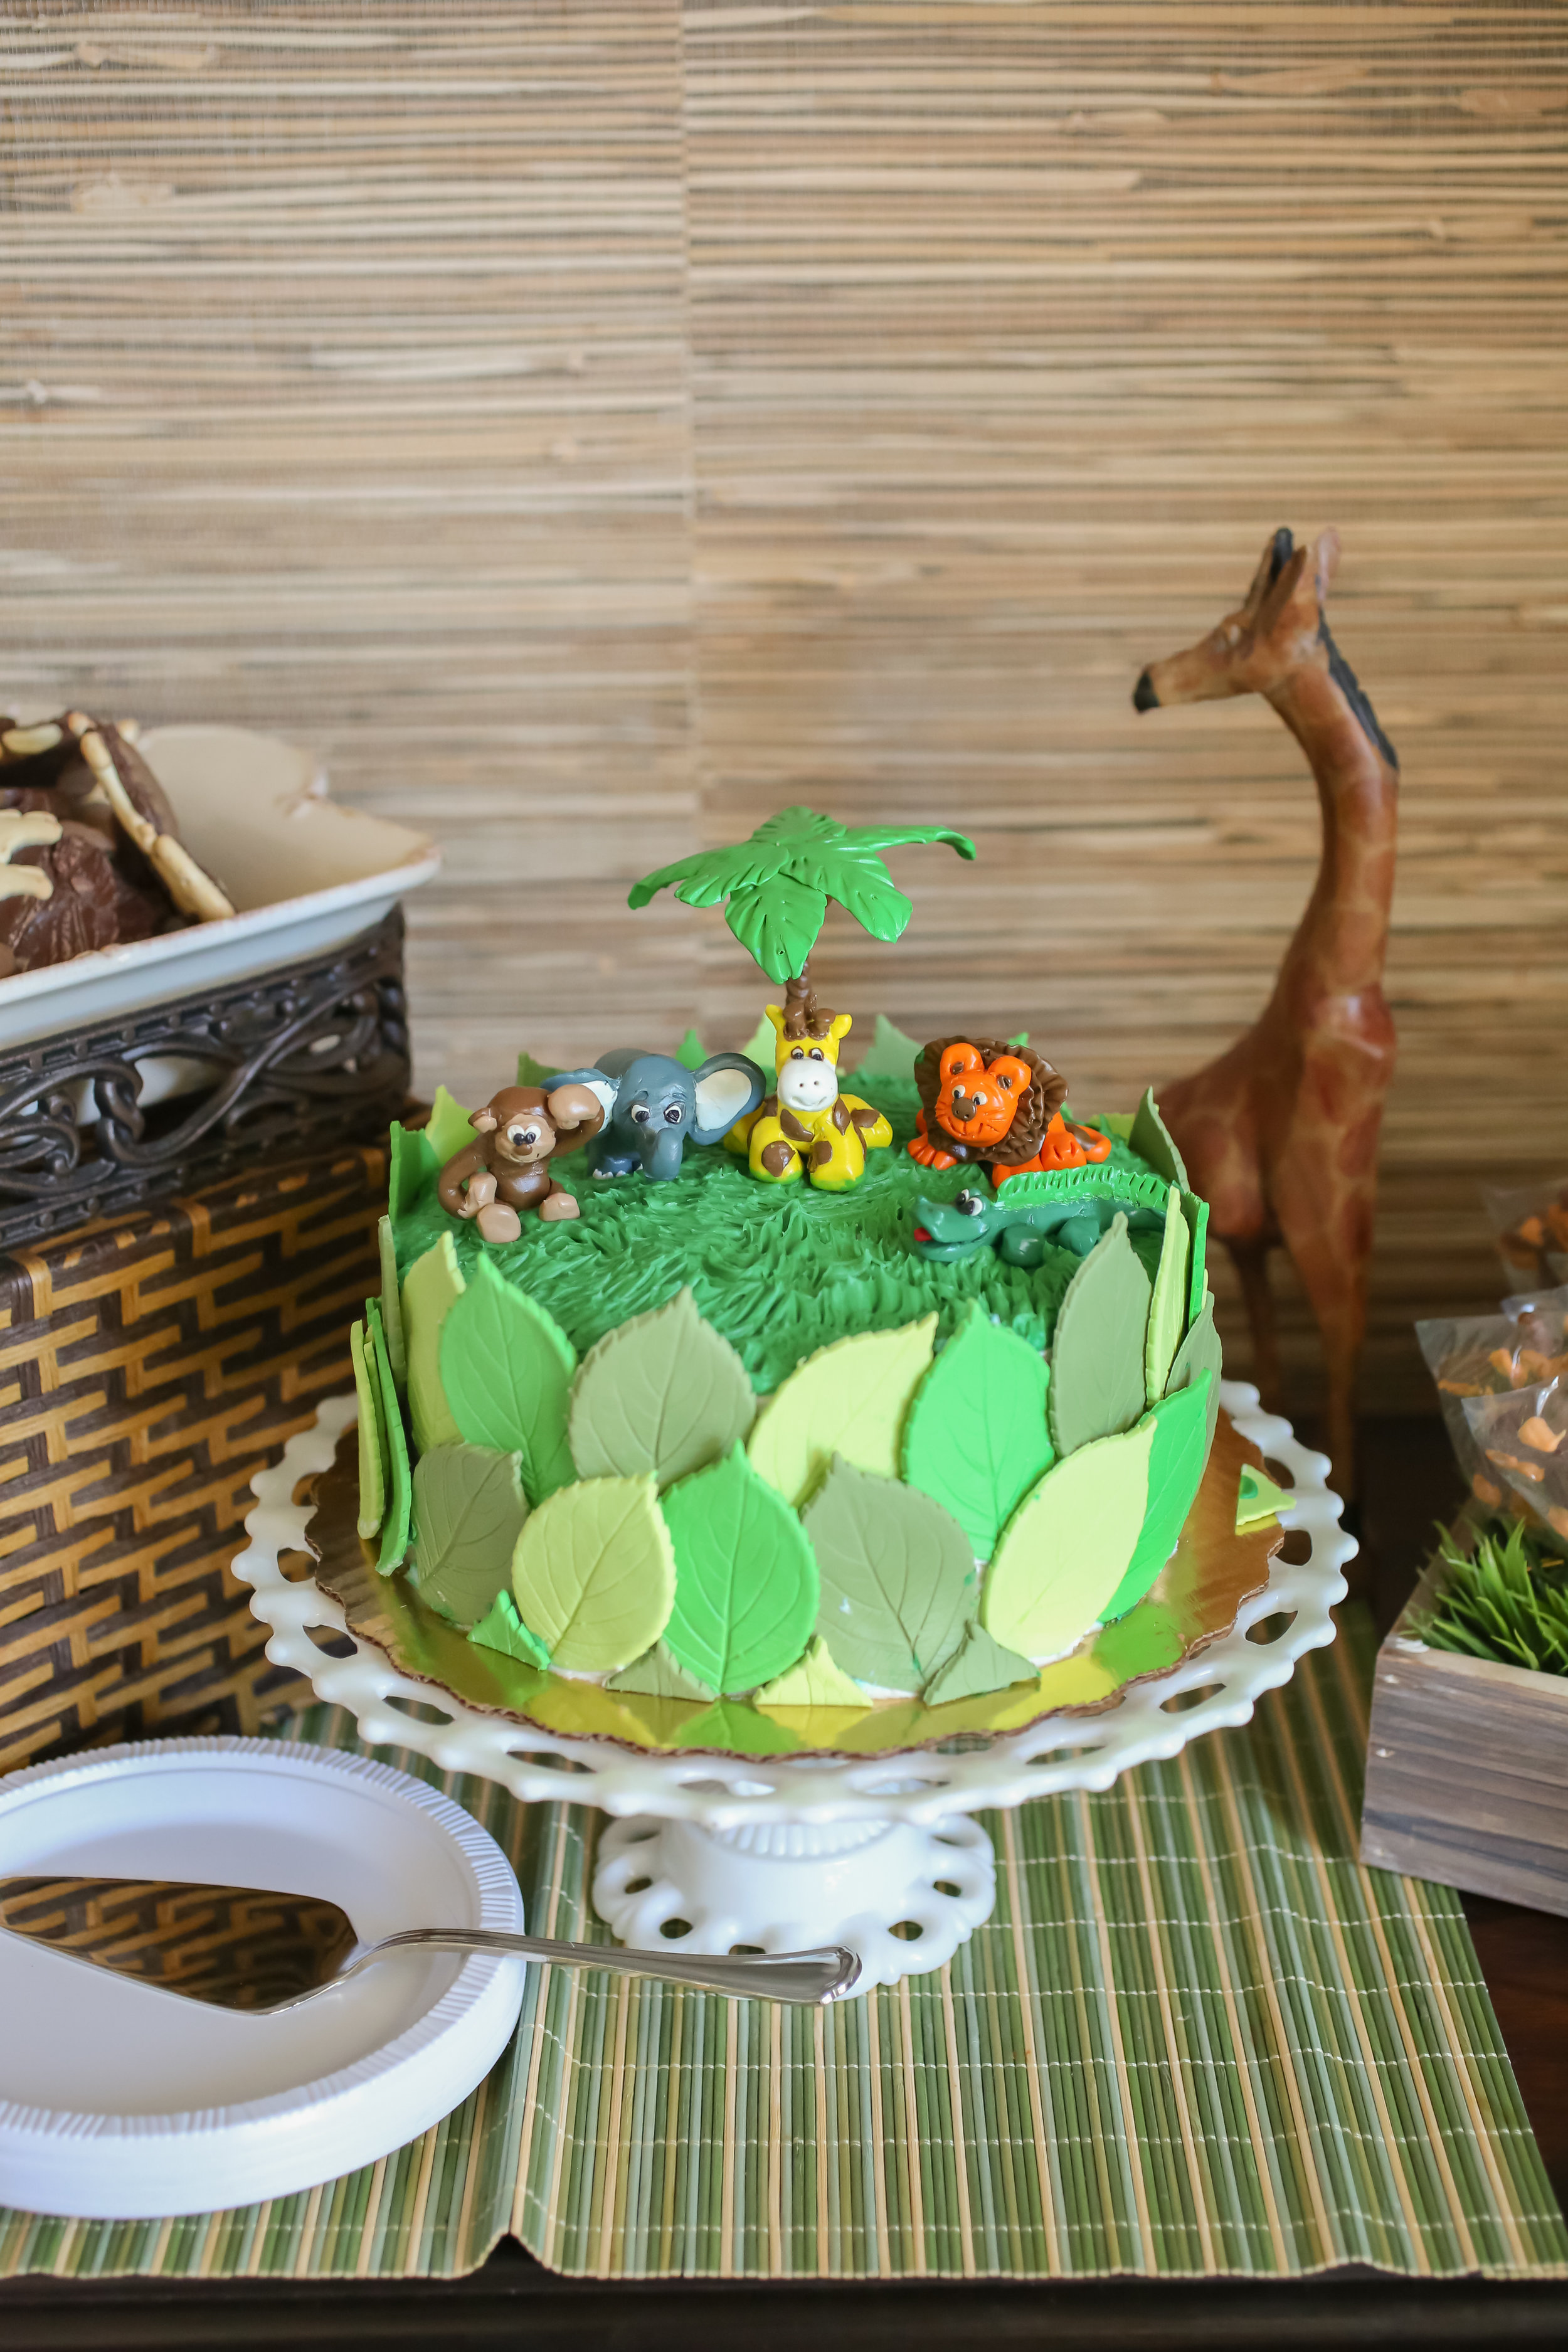 The star of the show (besides the beautiful mommy-to-be!) was the marble cake with gumpaste leaves, topped with handmade clay animals sitting in buttercream grass!